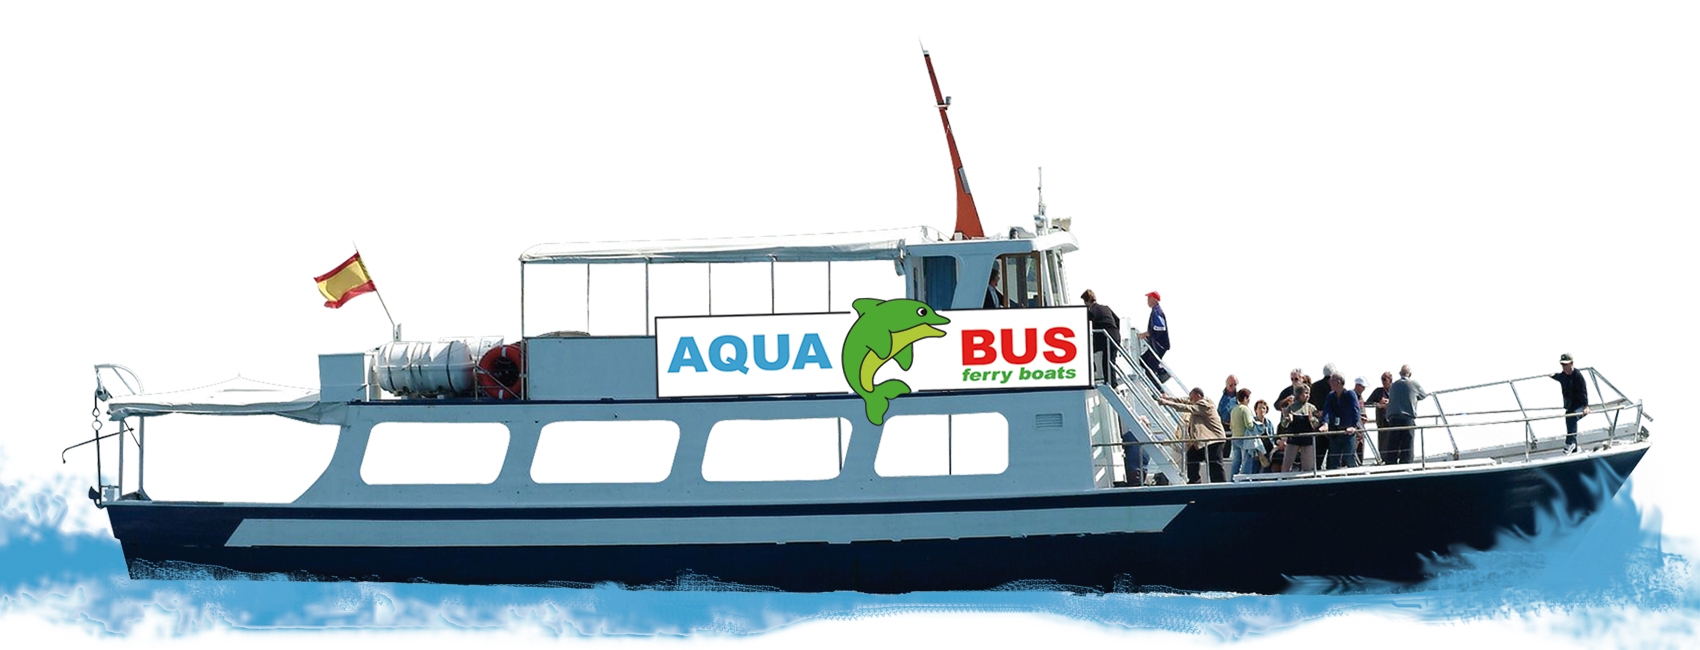 Yacht png ferry boat. Transparent images pluspng bgfooter